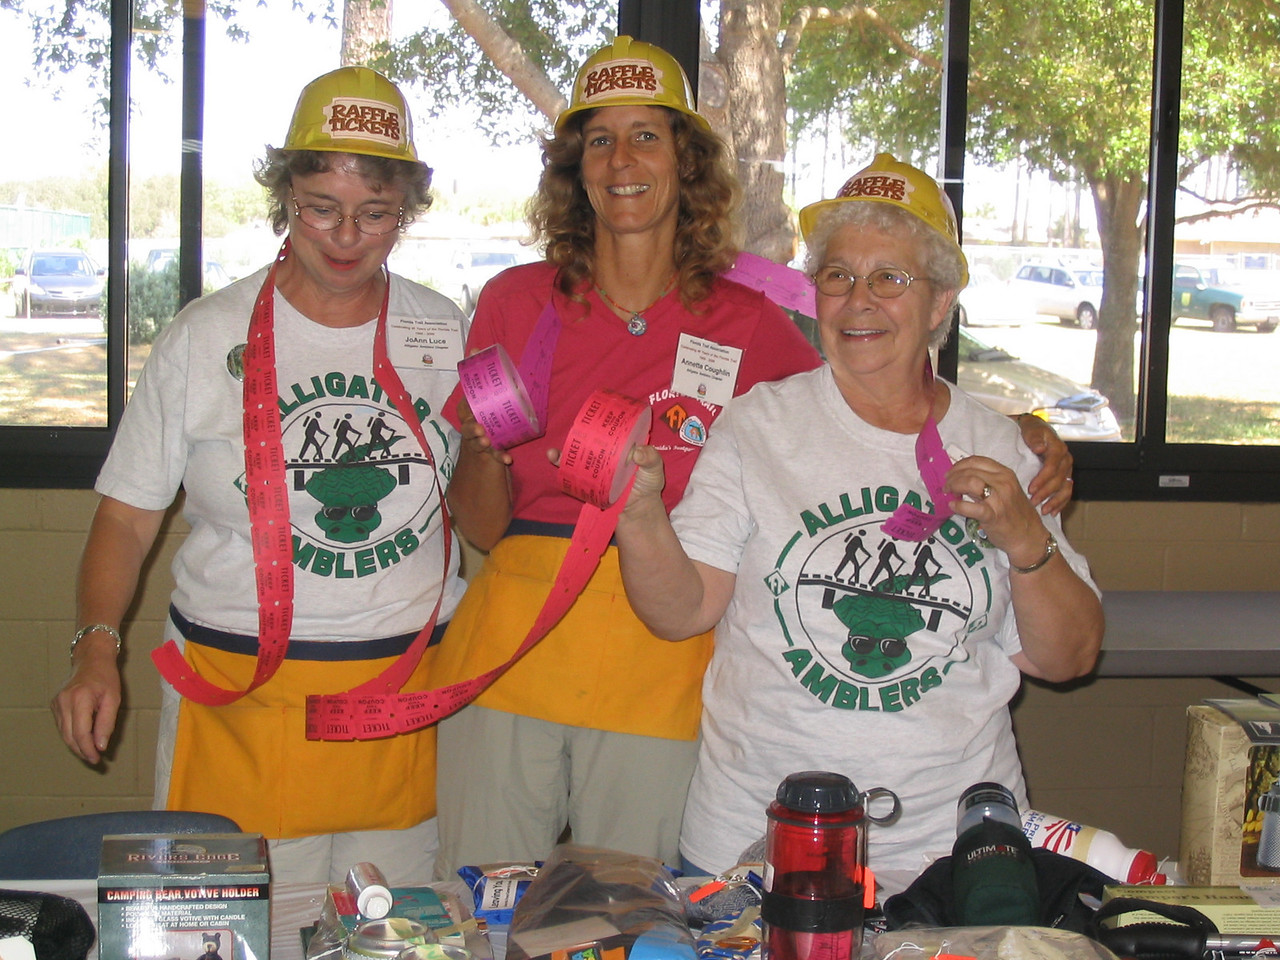 The Alligator Amblers sell raffle tickets: Joann Luce, Annette Coughlin, and Gerry Horner<br /> PHOTO CREDIT: Diane Wilkins / Florida Trail Association